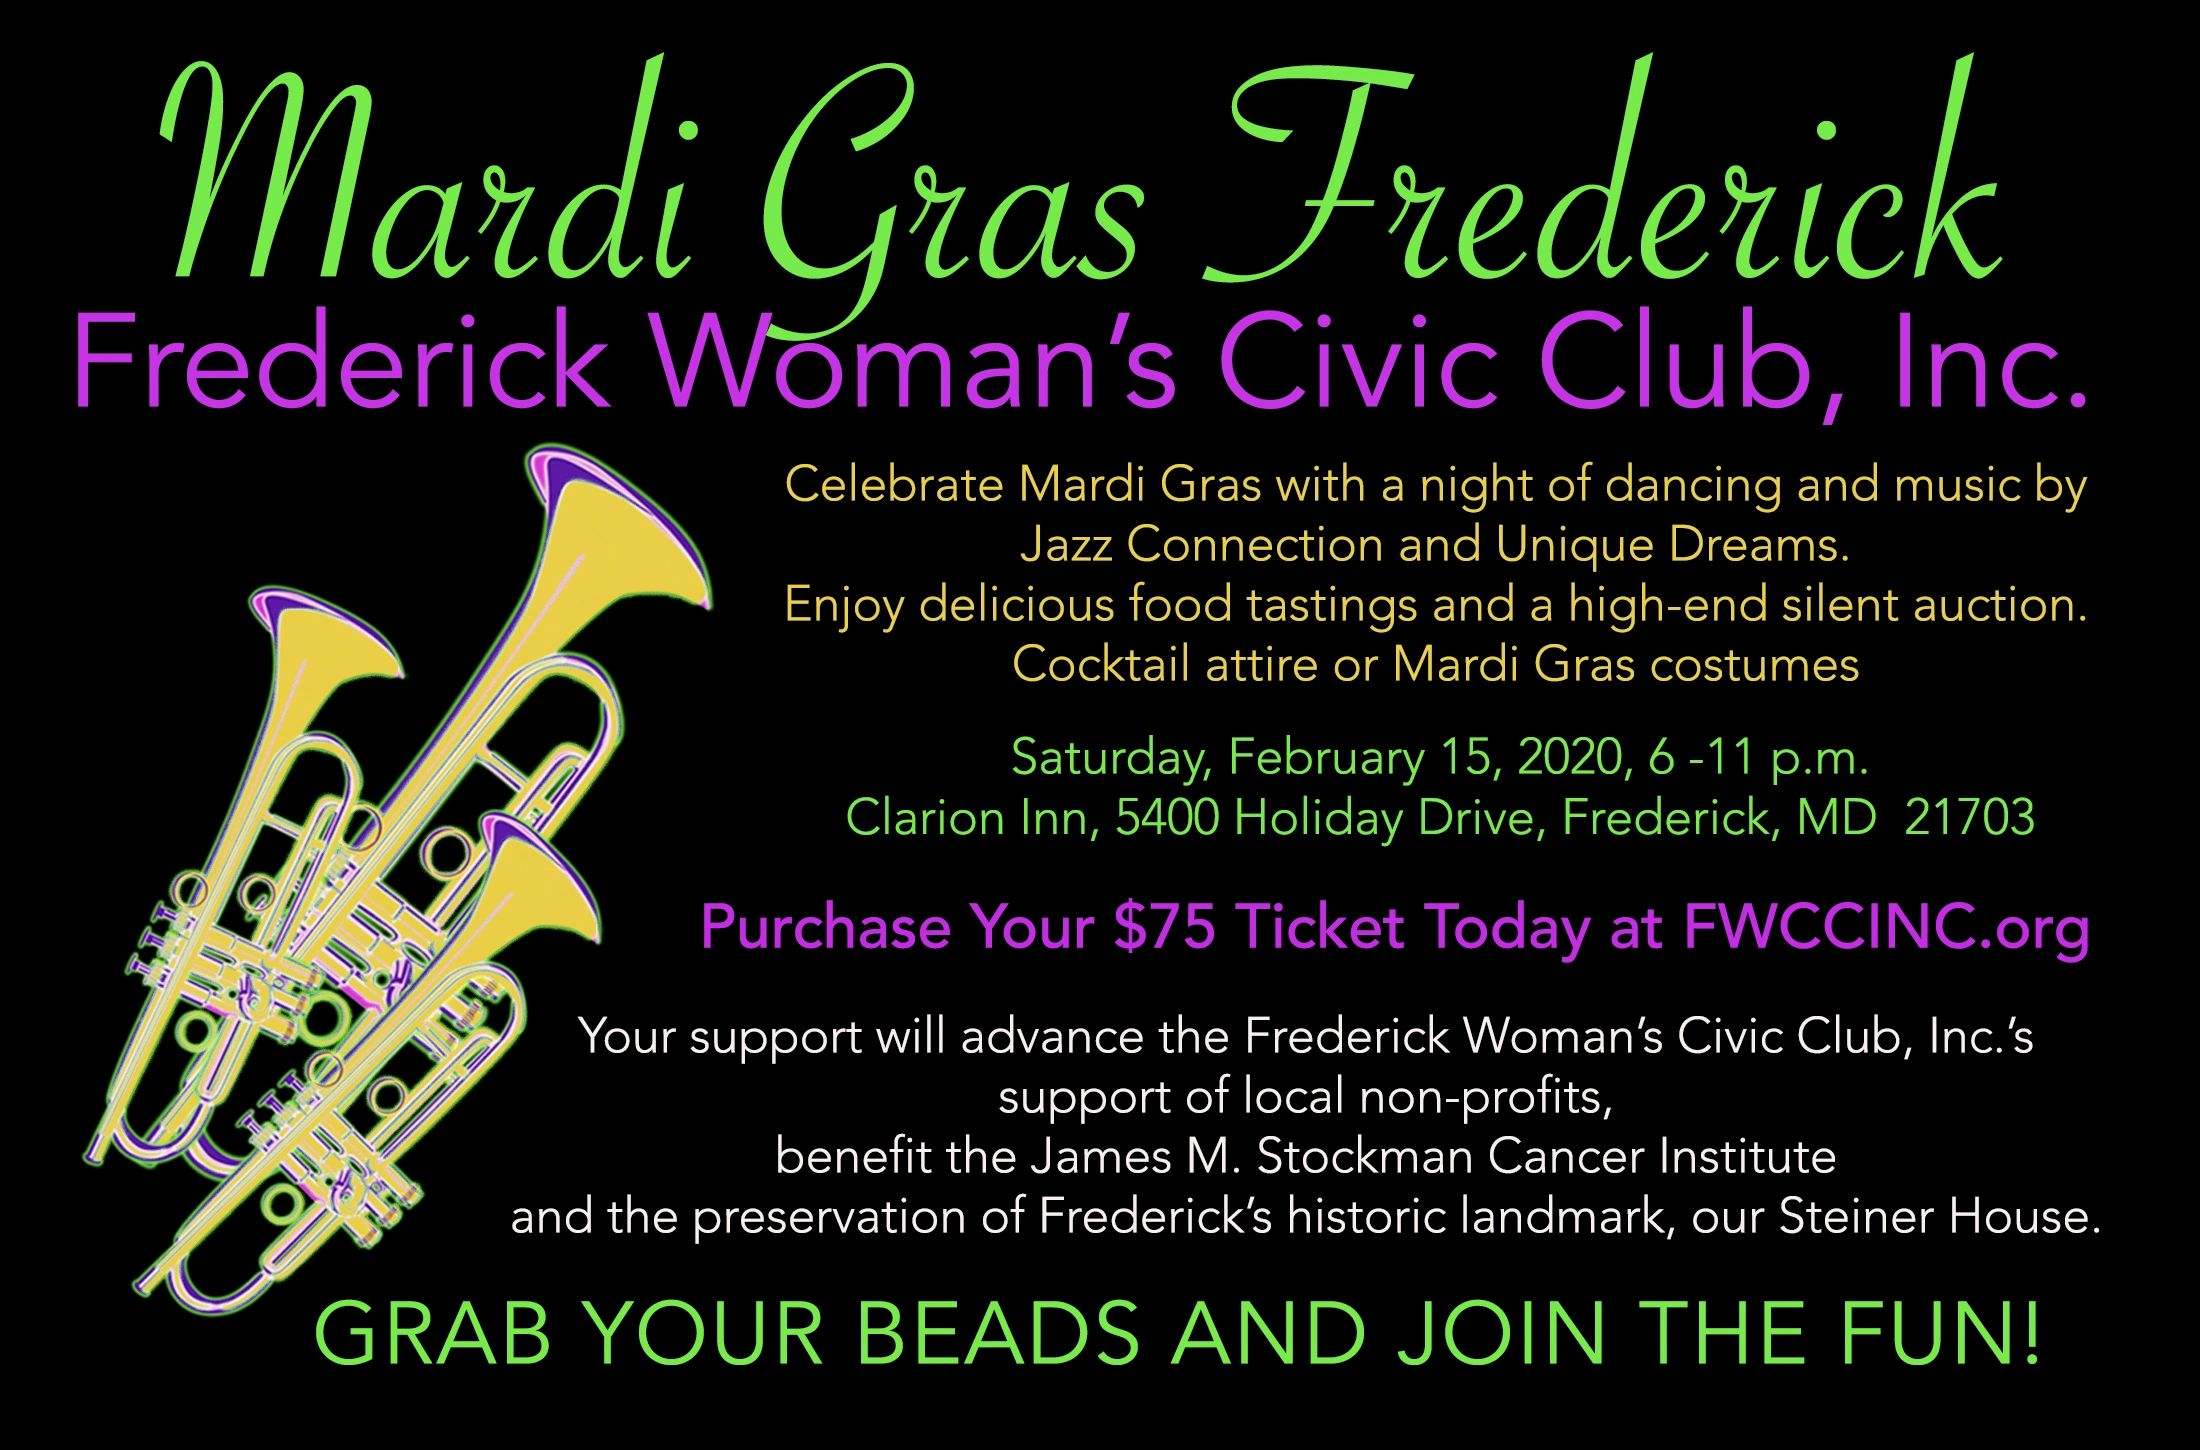 Go to EVENTS/Mardi Gras for more information.